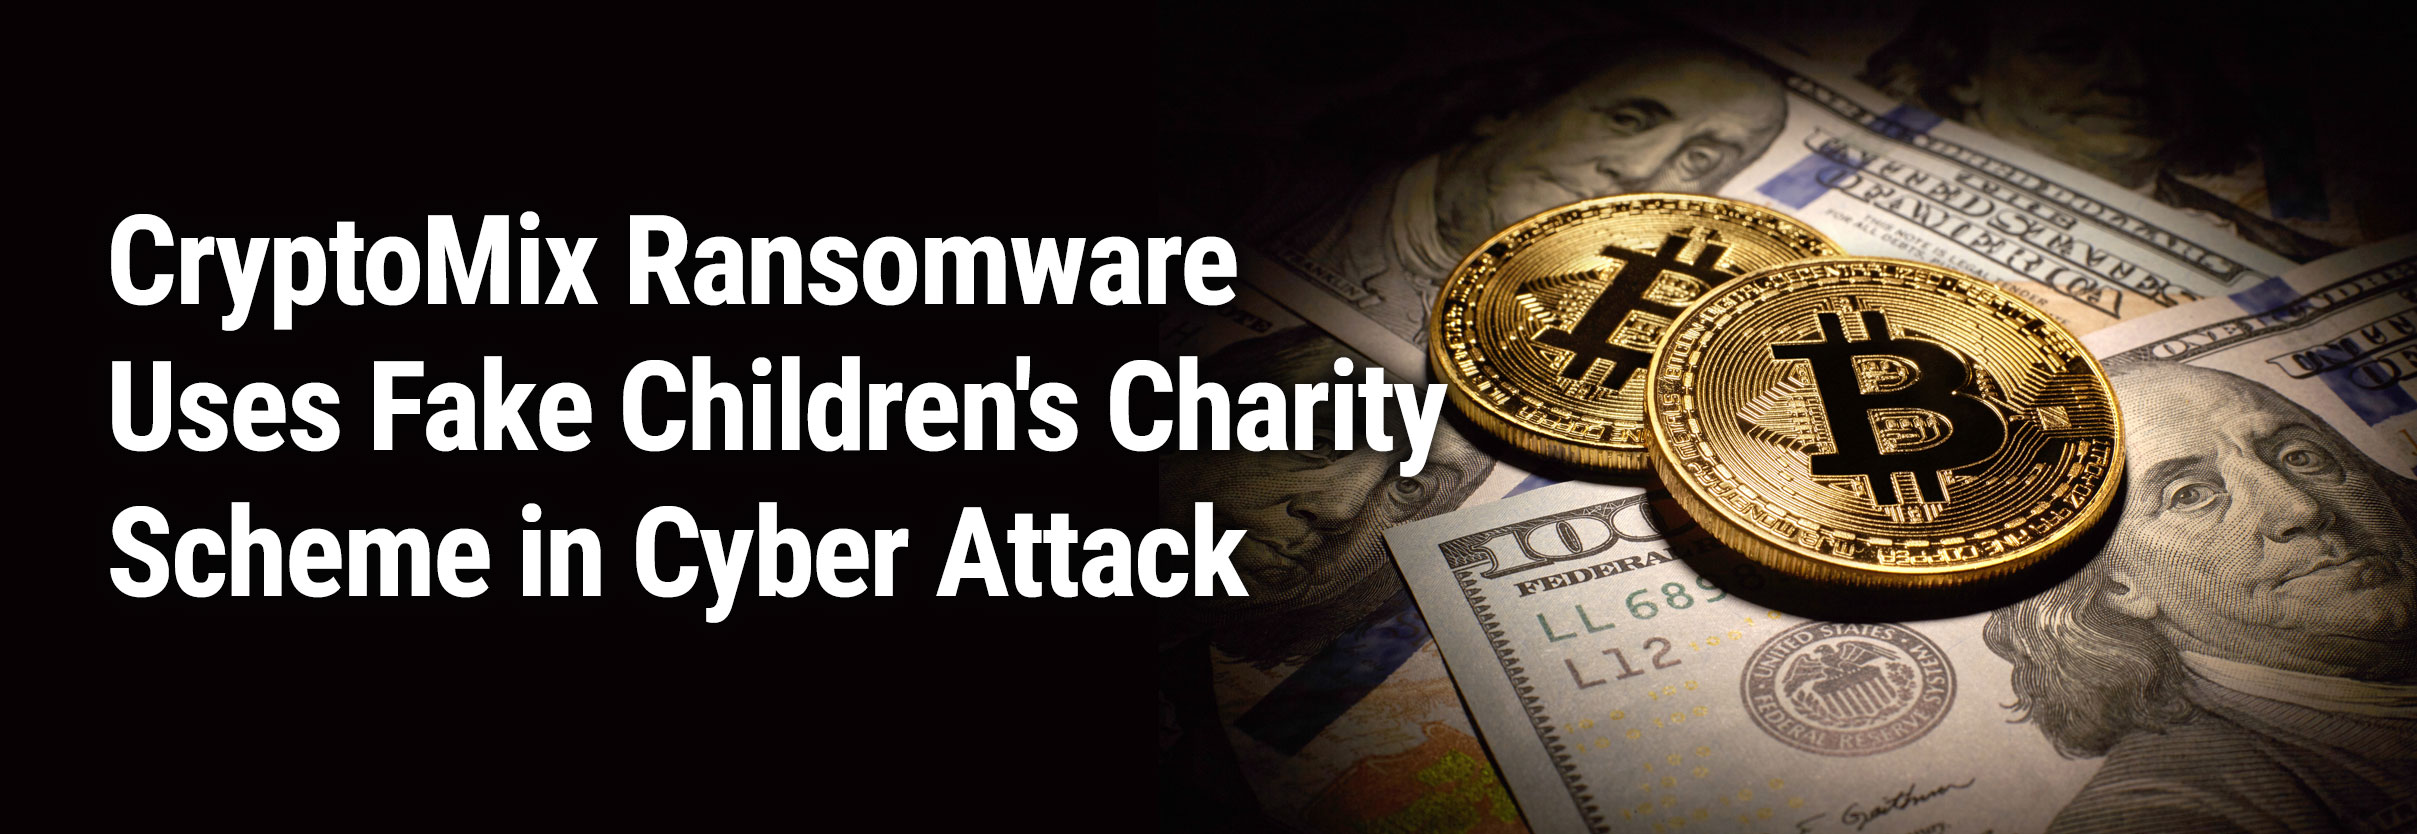 CryptoMix Ransomware Uses Fake Children's Charity Scheme in Cyber Attack